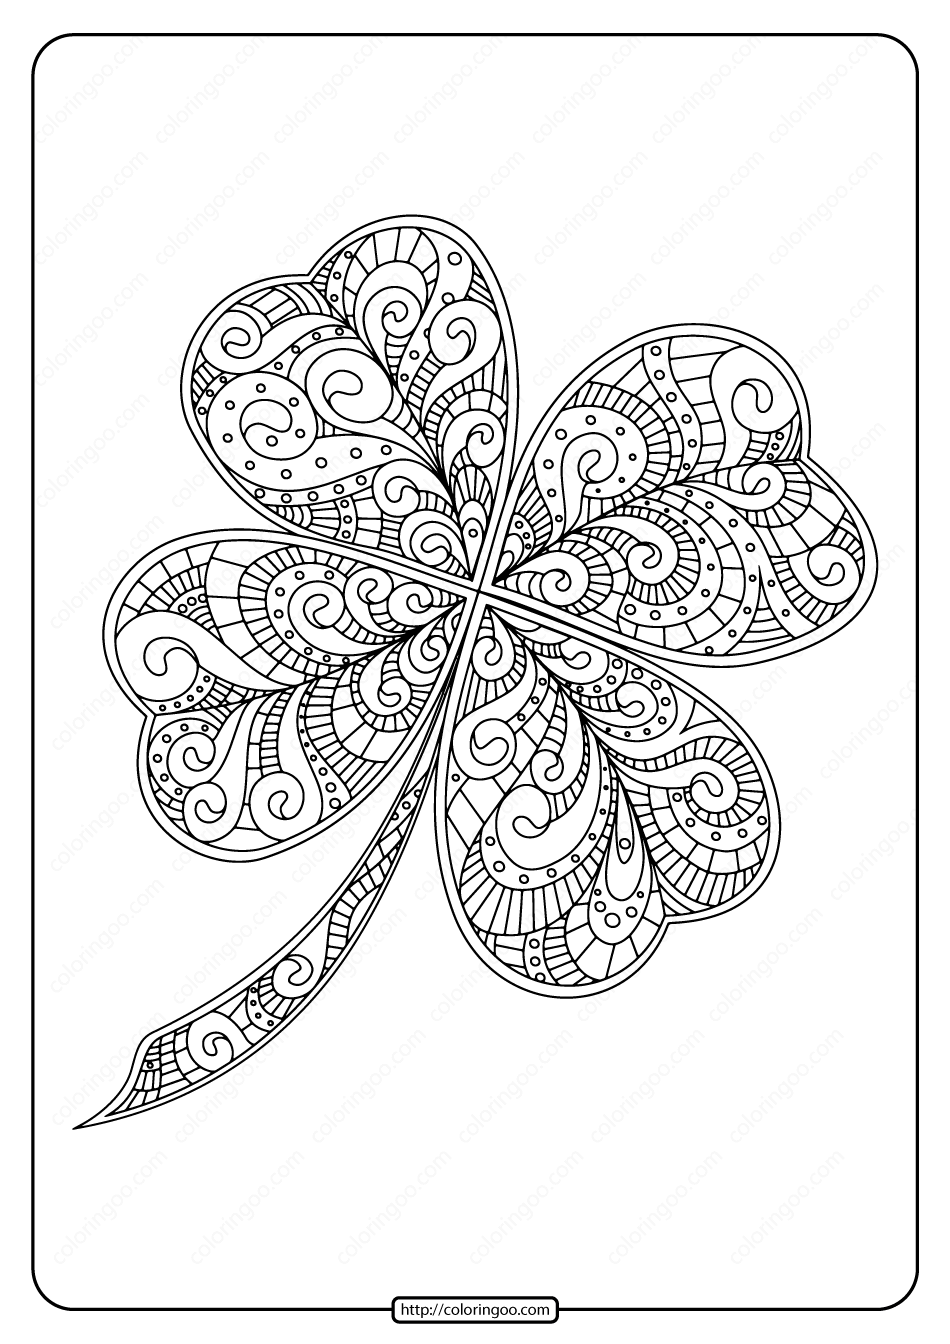 Printable Zentangle Four Leaf Clover Coloring Page